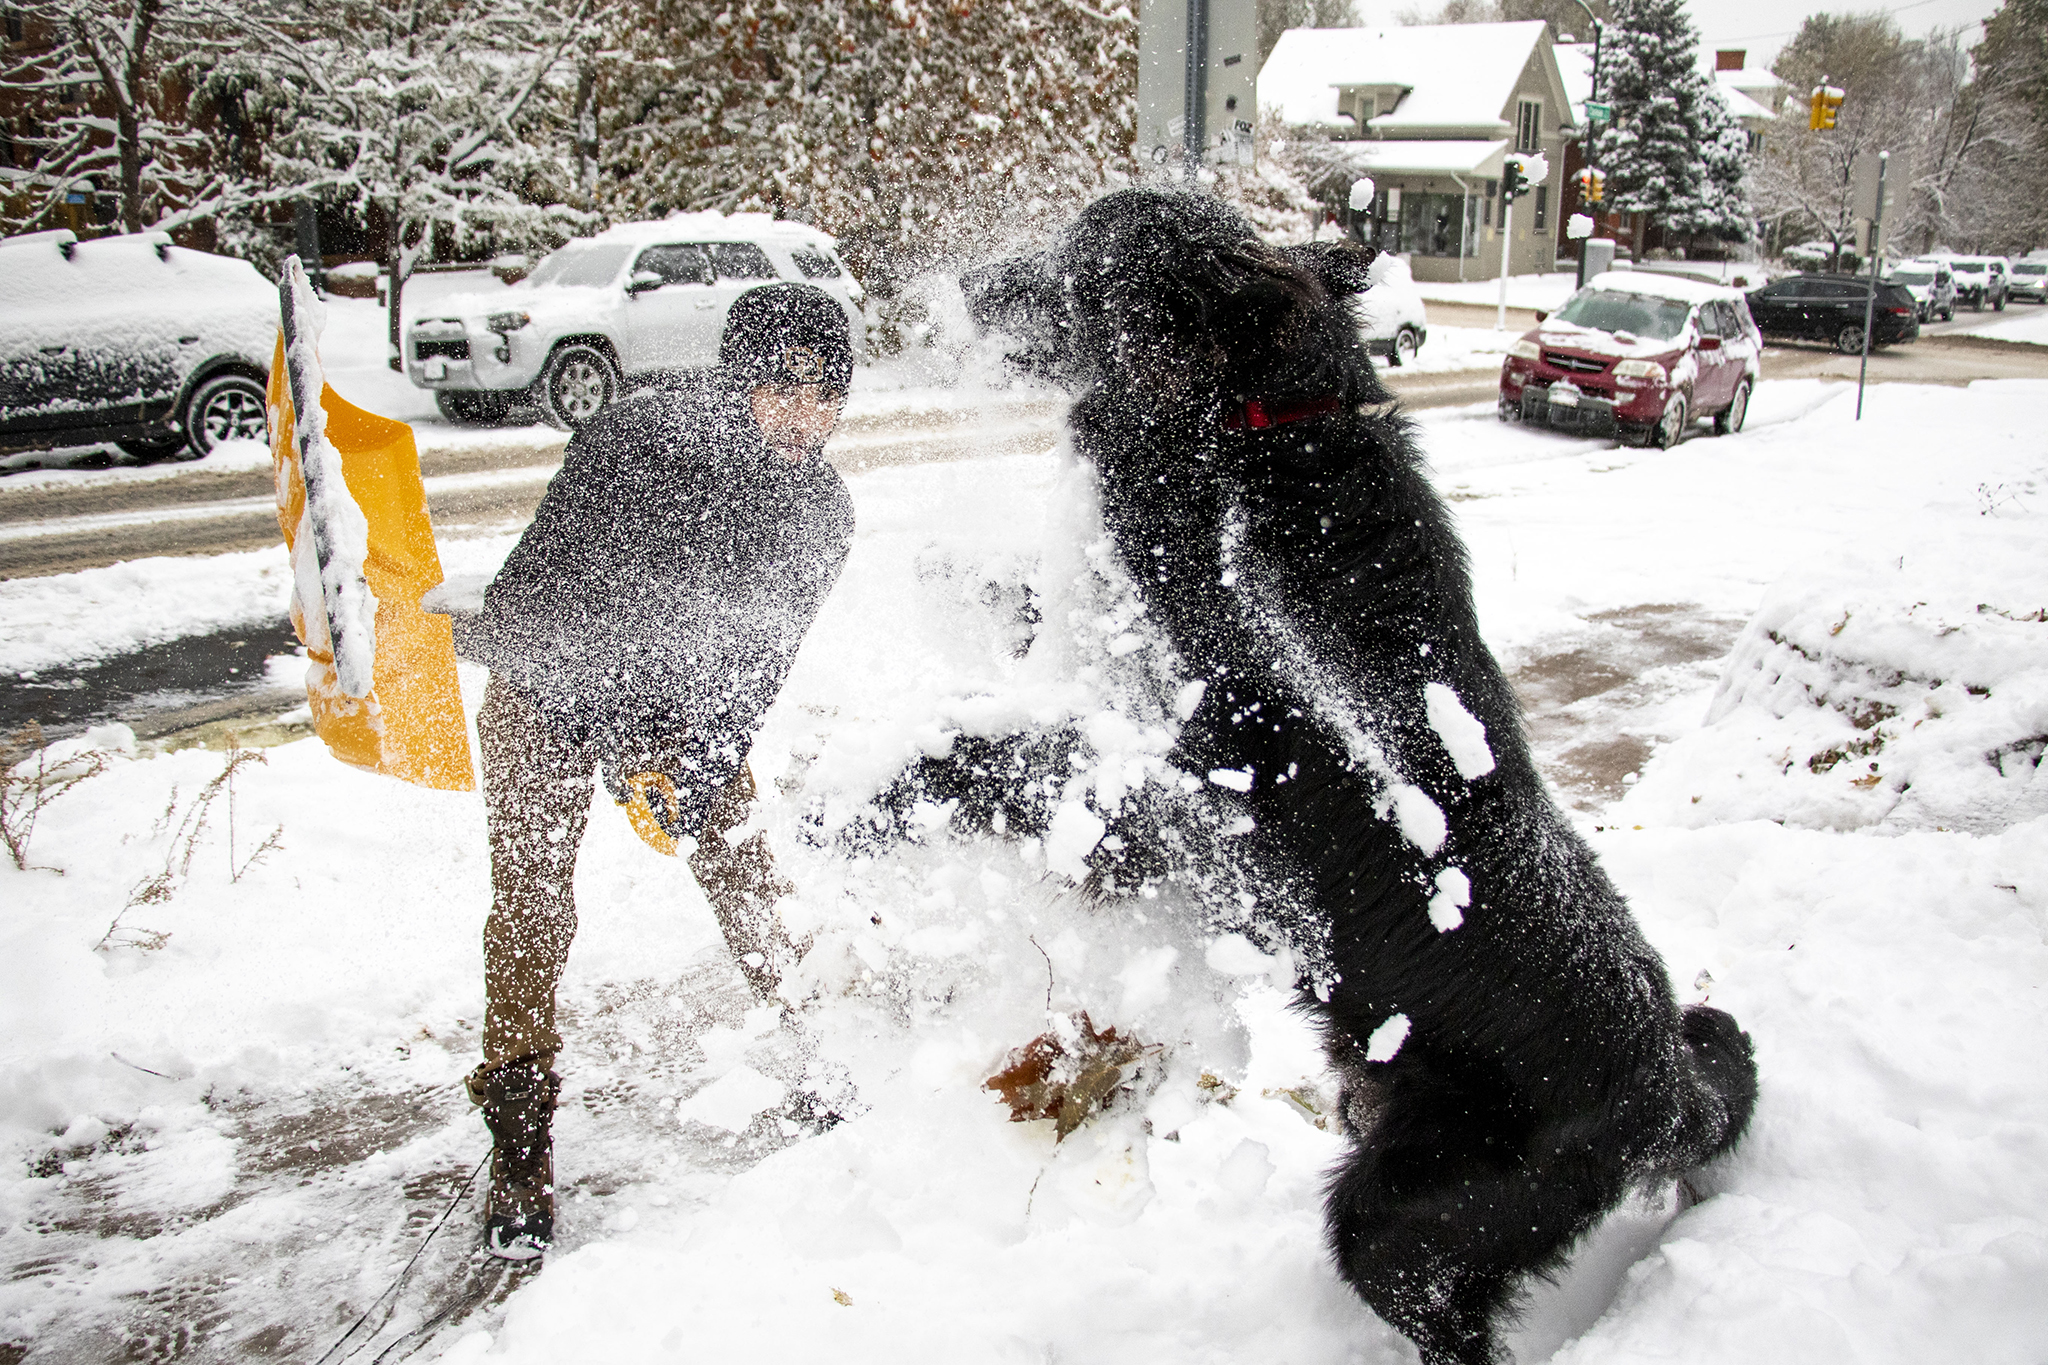 Moose plays with his human, Luke Yeager, in the snow on Capitol Hill in Denver on Oct. 28, 2019.